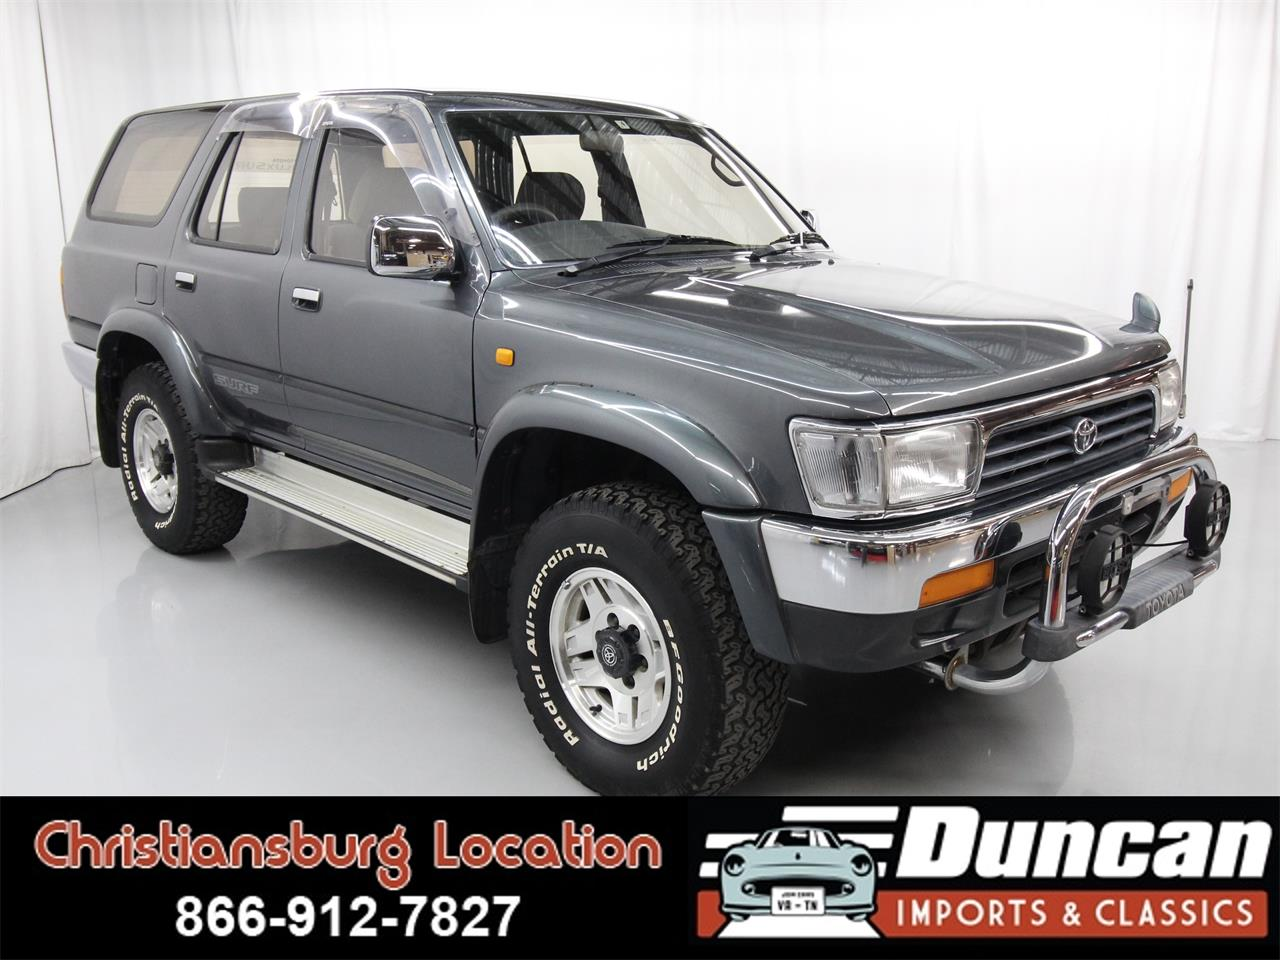 1993 Toyota Hilux (CC-1296670) for sale in Christiansburg, Virginia